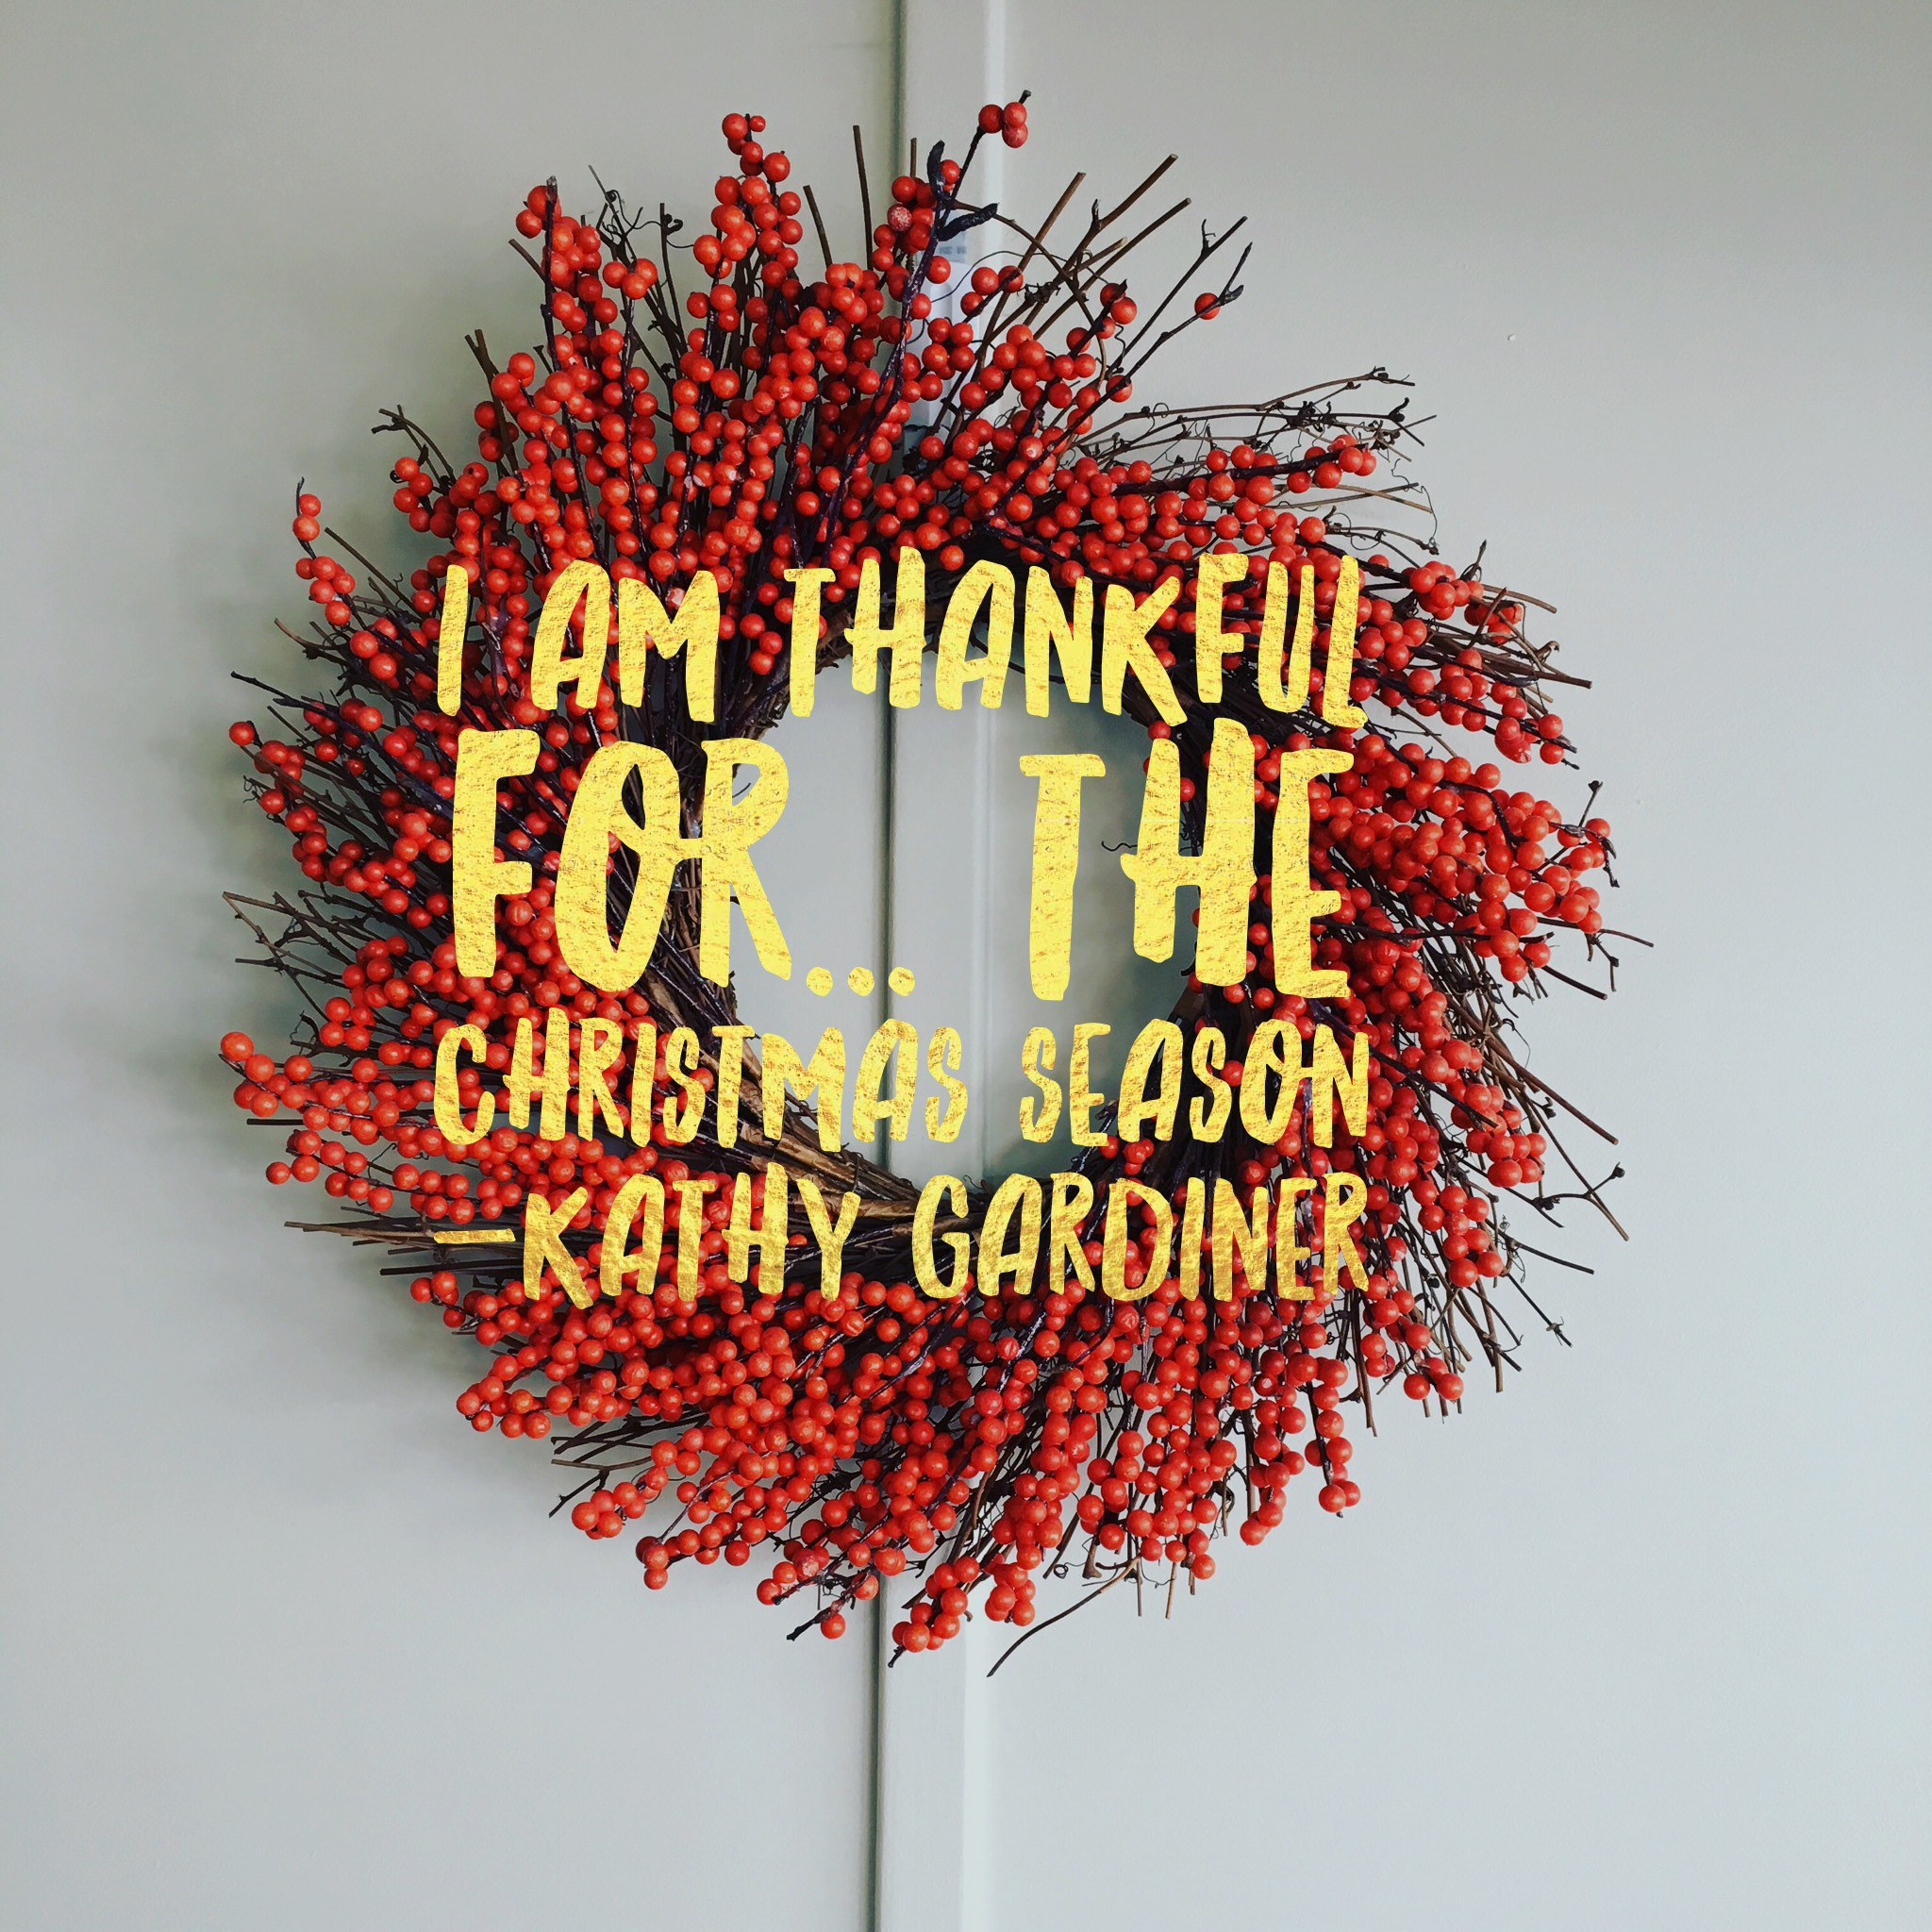 thankful-thursdays-christmas-season-the-naked-gardiner-kathy-gardiner